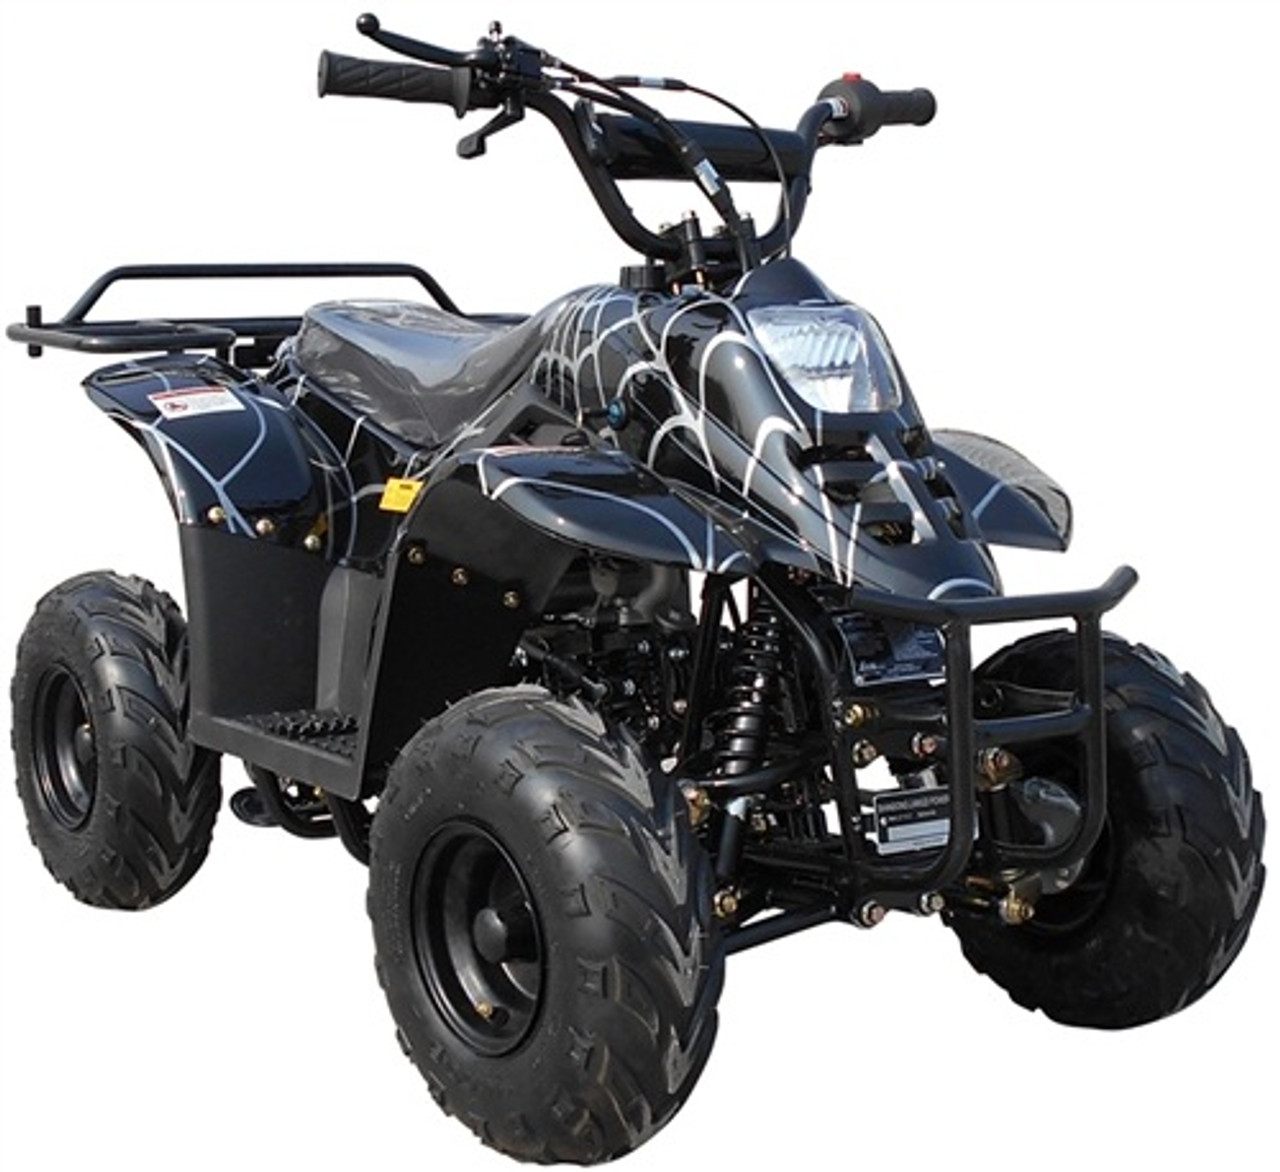 "ICE BEAR 110cc Youth ATV Automatic w/ Reverse Remote Control, 6"" Tires (PAH110-2), CARB APPROVED"